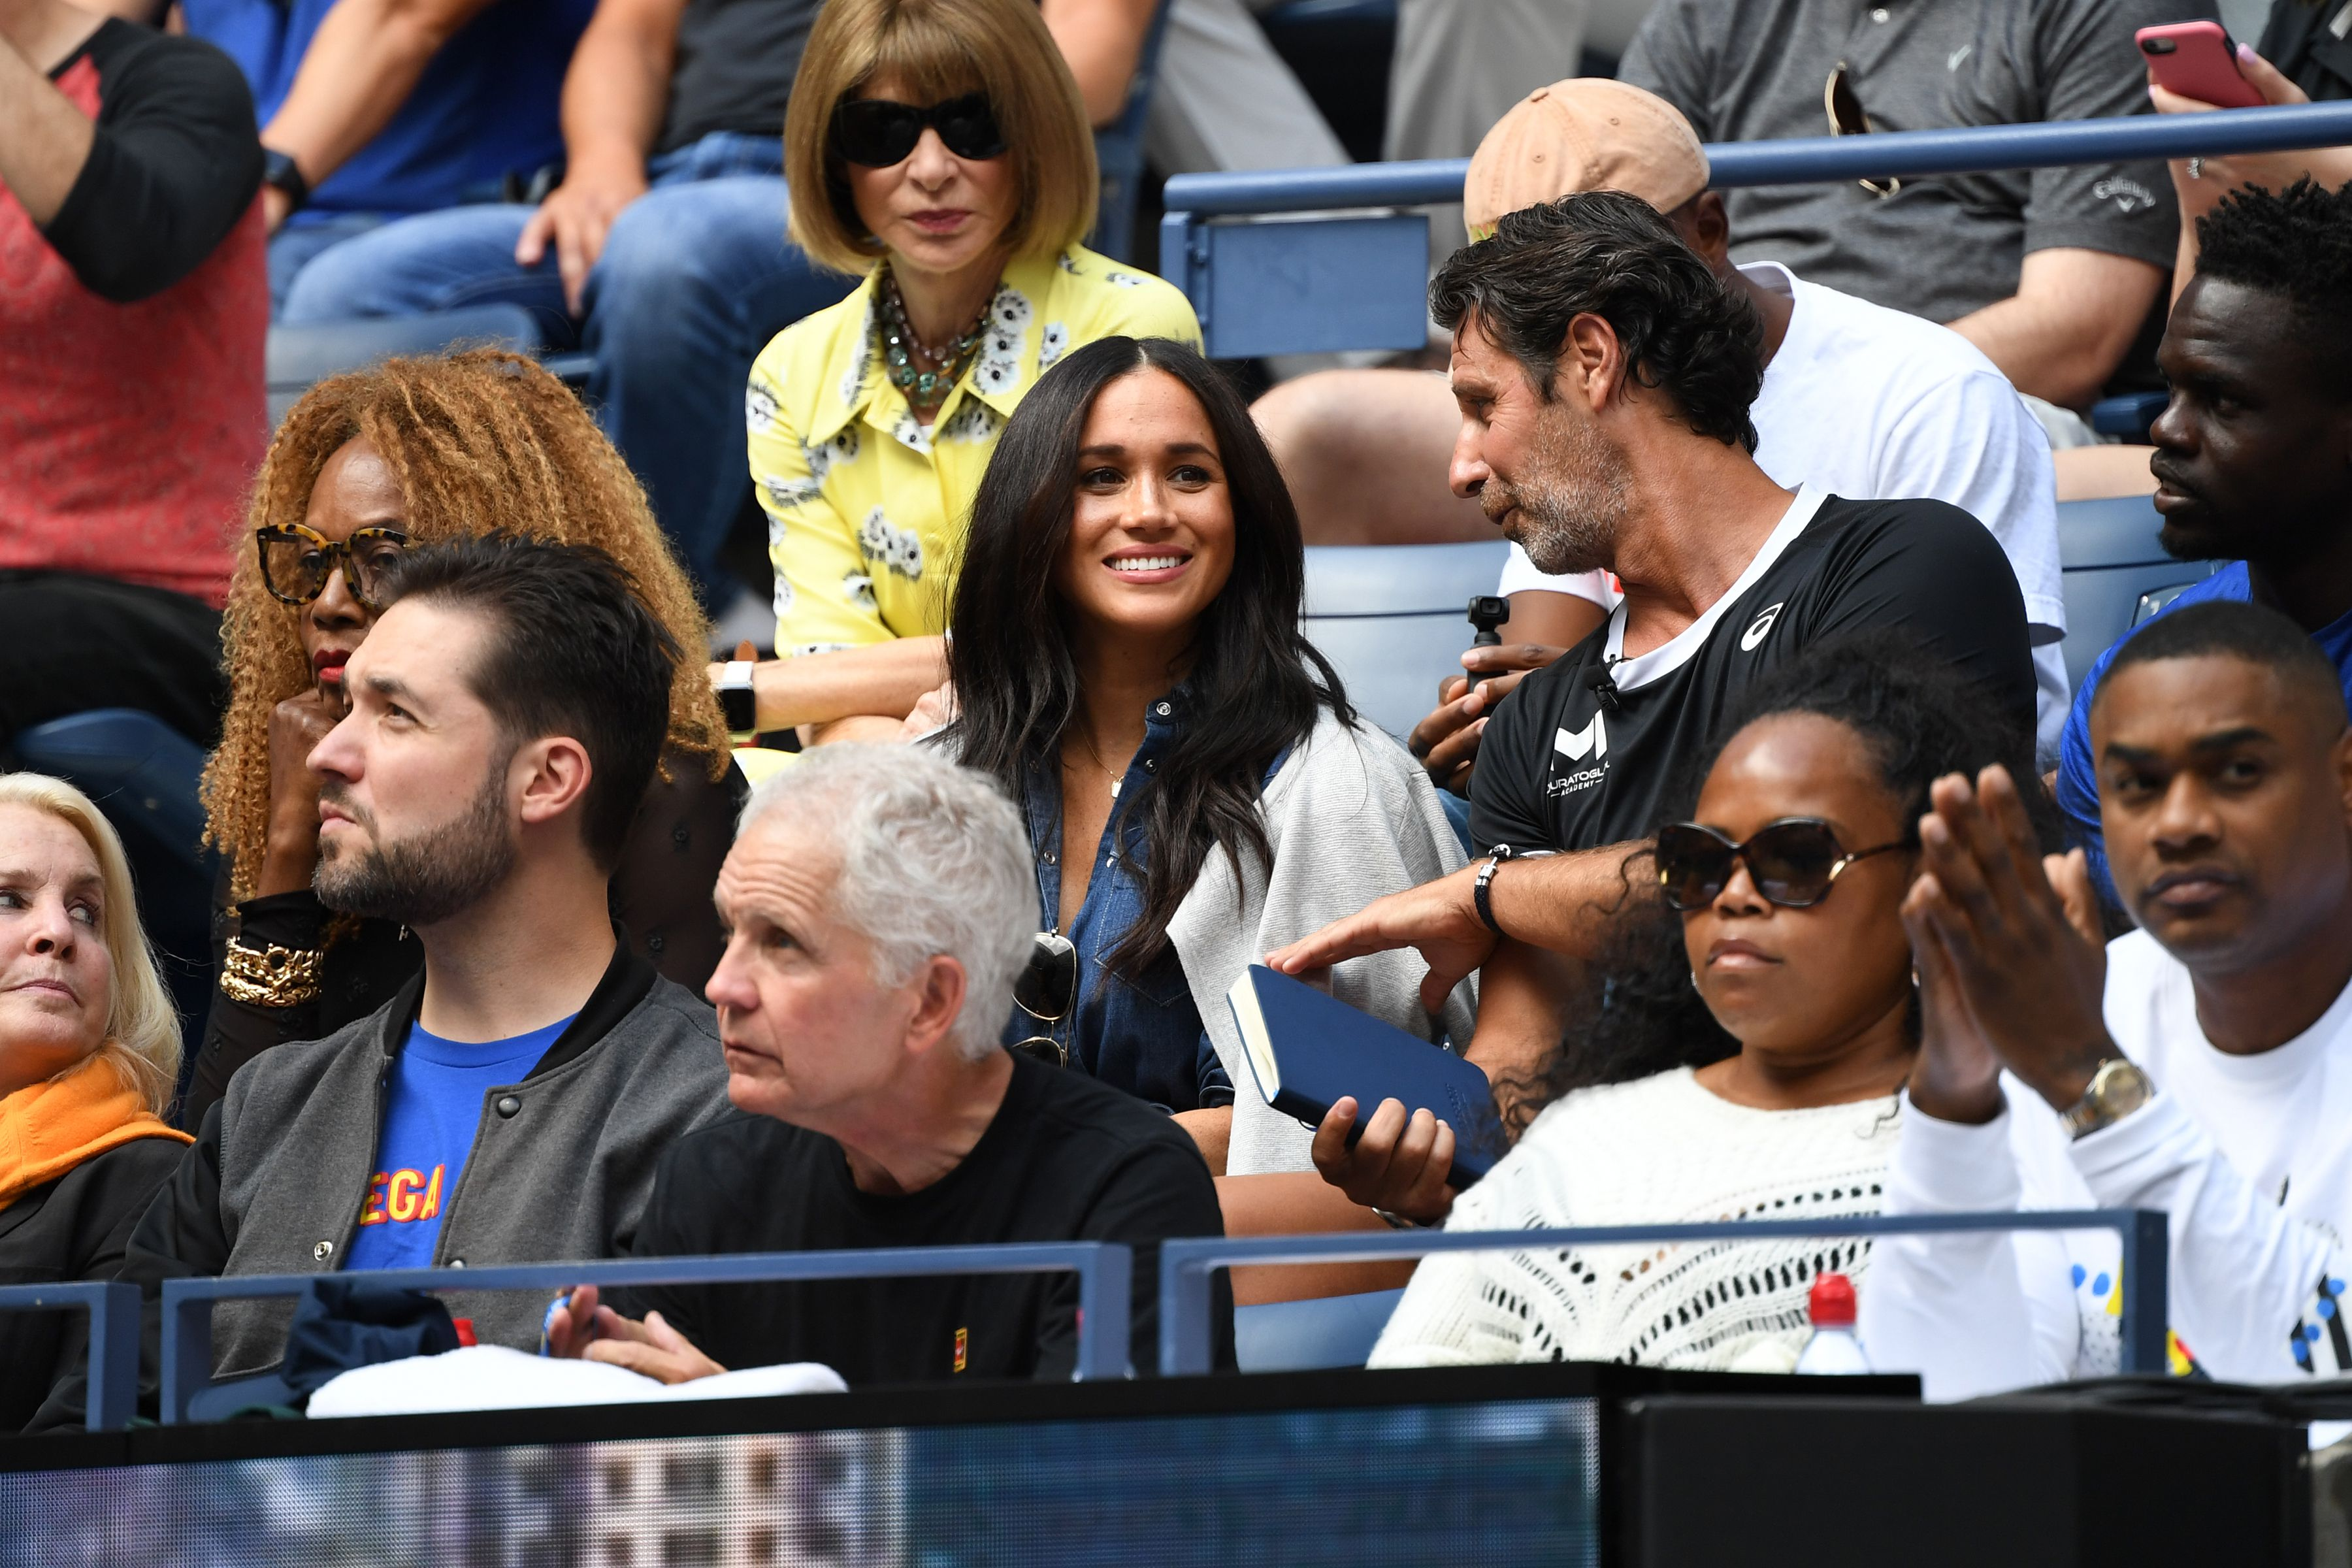 Meghan Markle Shows Off Royal Wave During Jumbotron Moment at the U.S. Open — See the Clip!